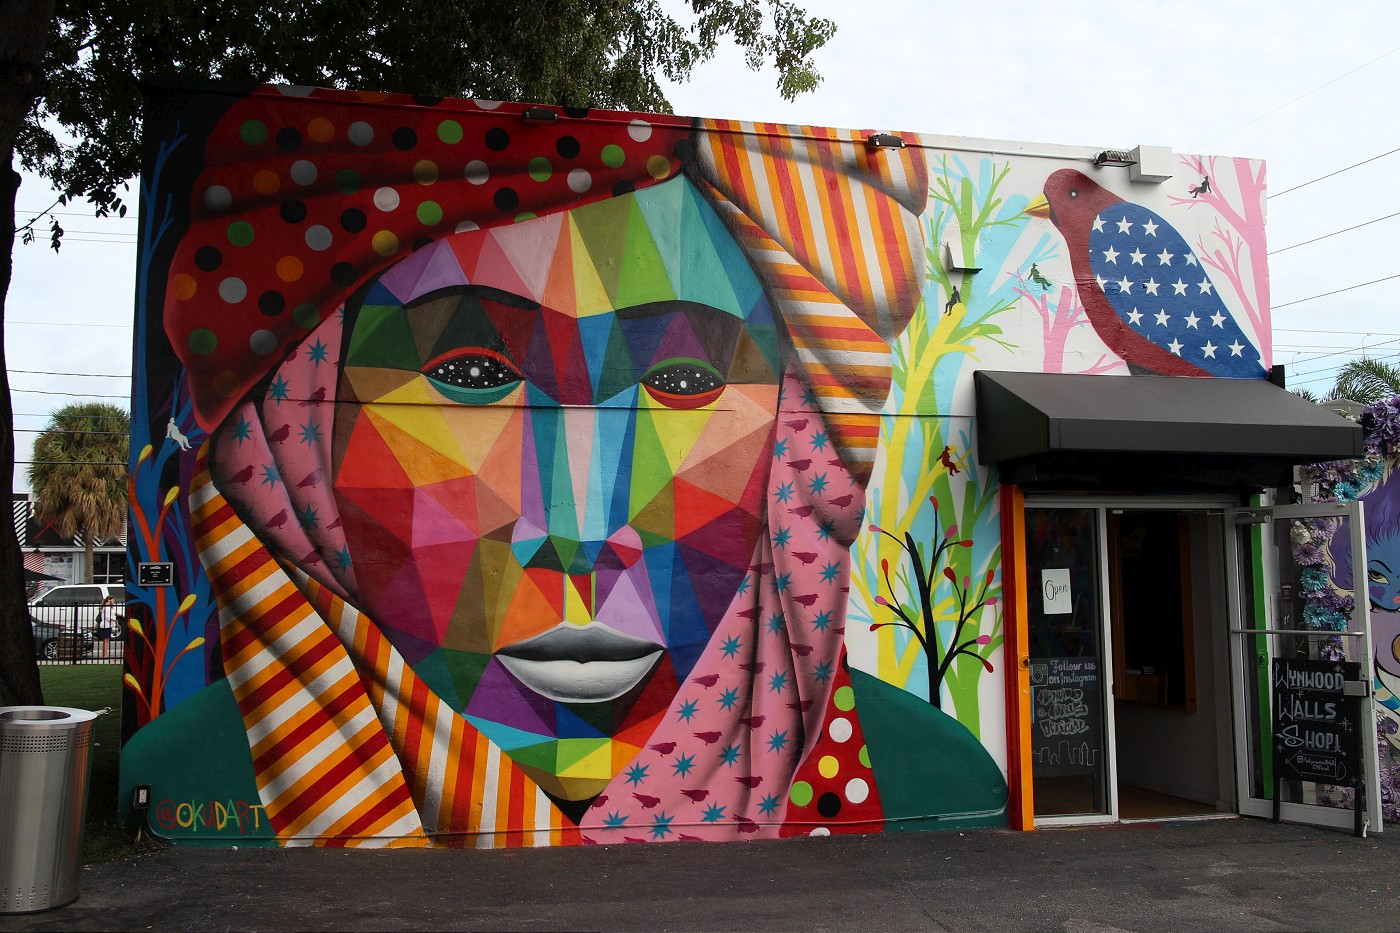 wynwood_walls02